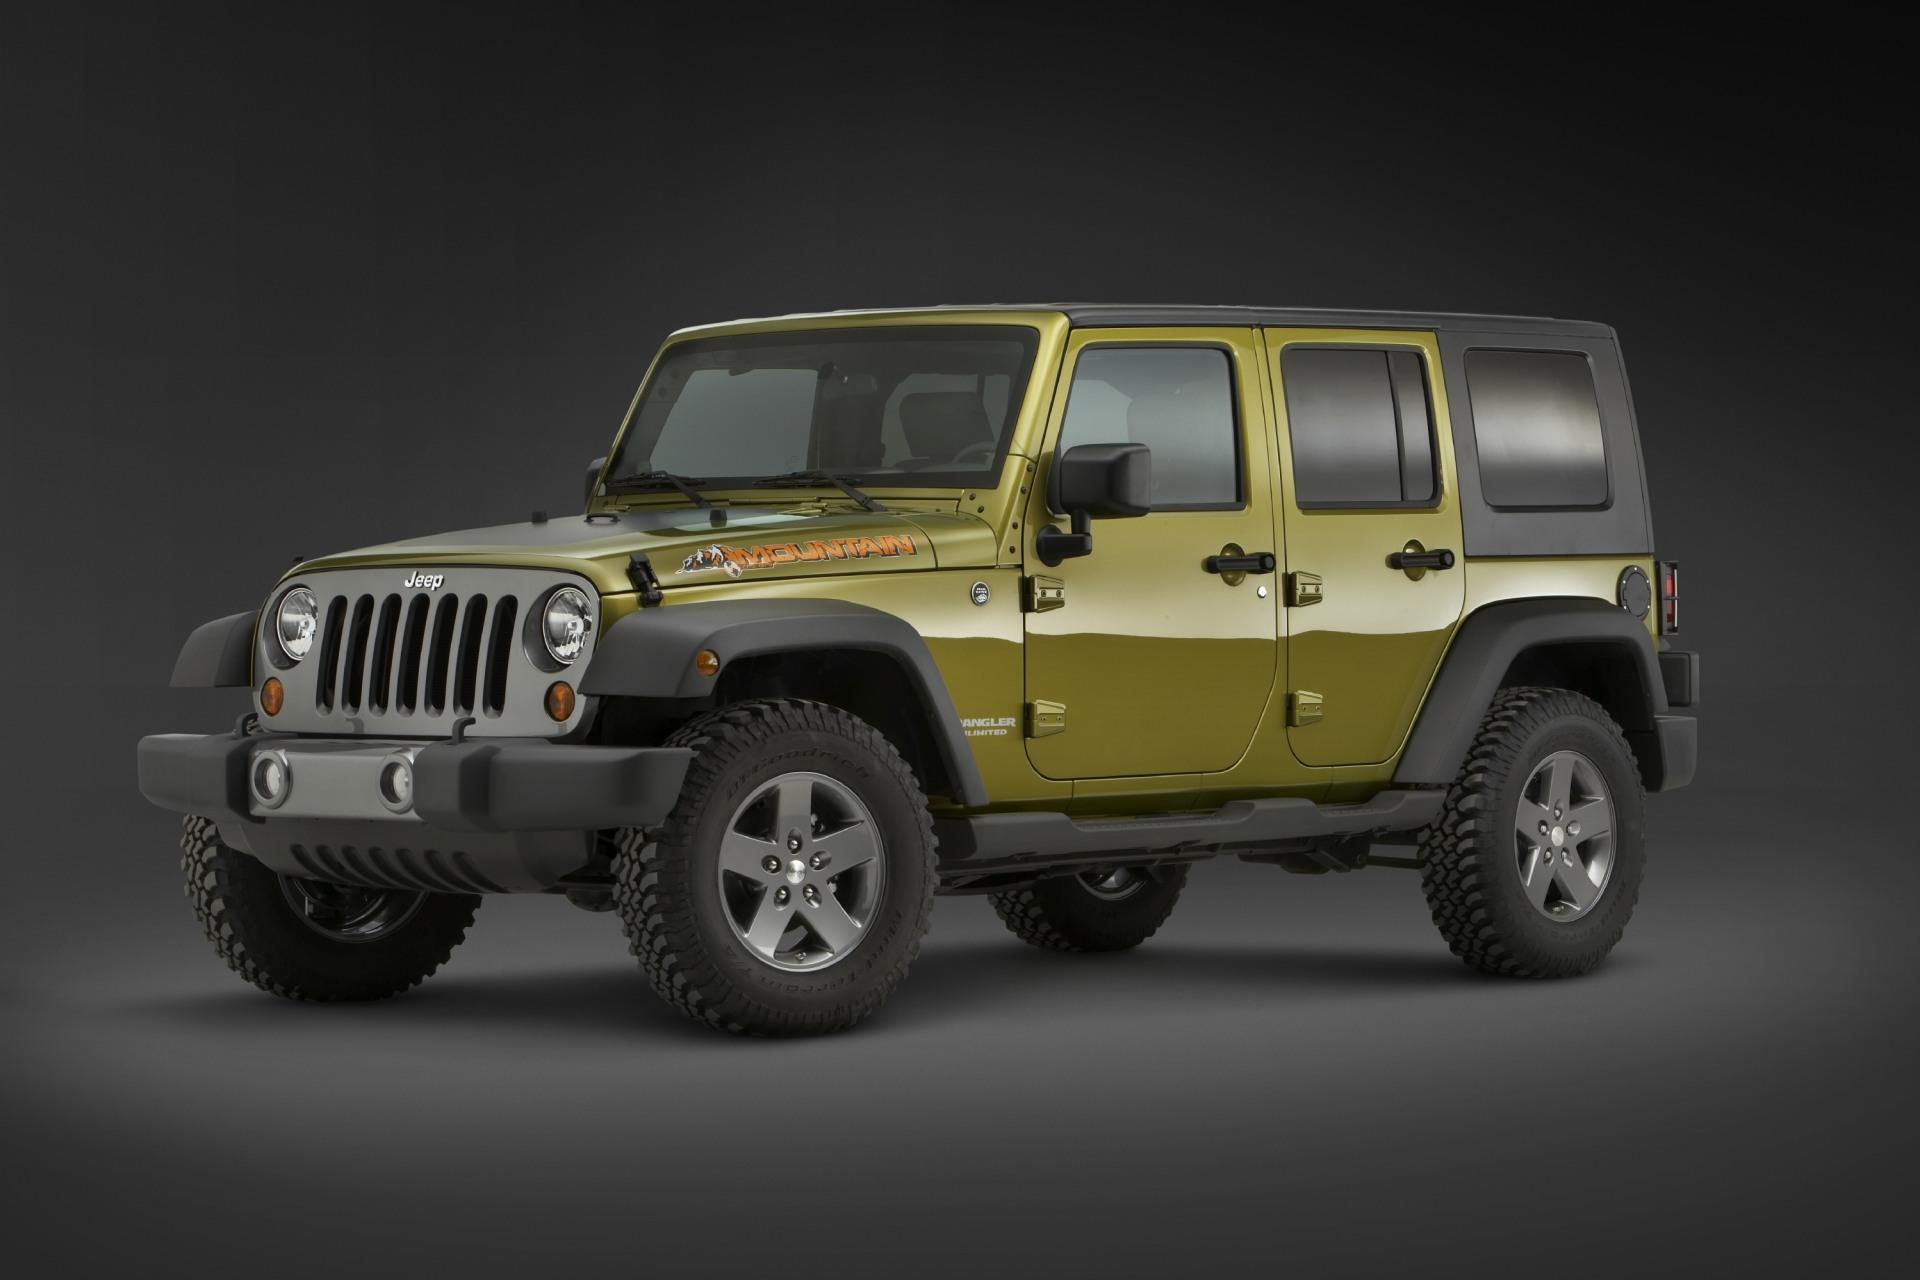 2010 Jeep Wrangler Unlimited Mountain Edition News and ...